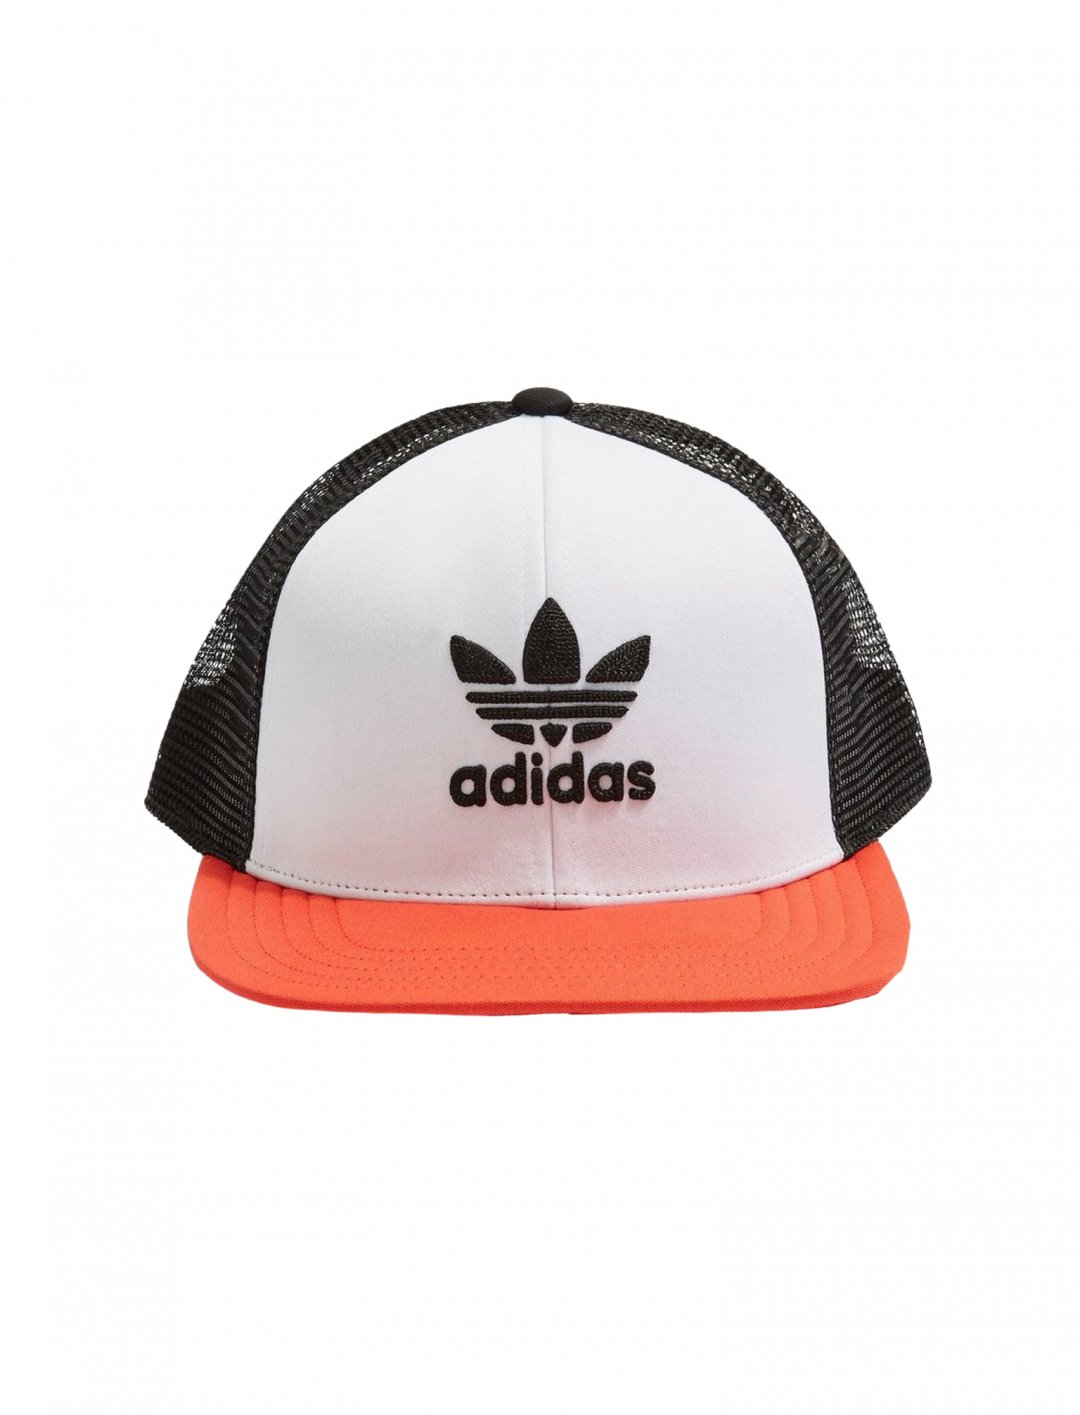 Adidas Trucker Ca Accessories Adidas